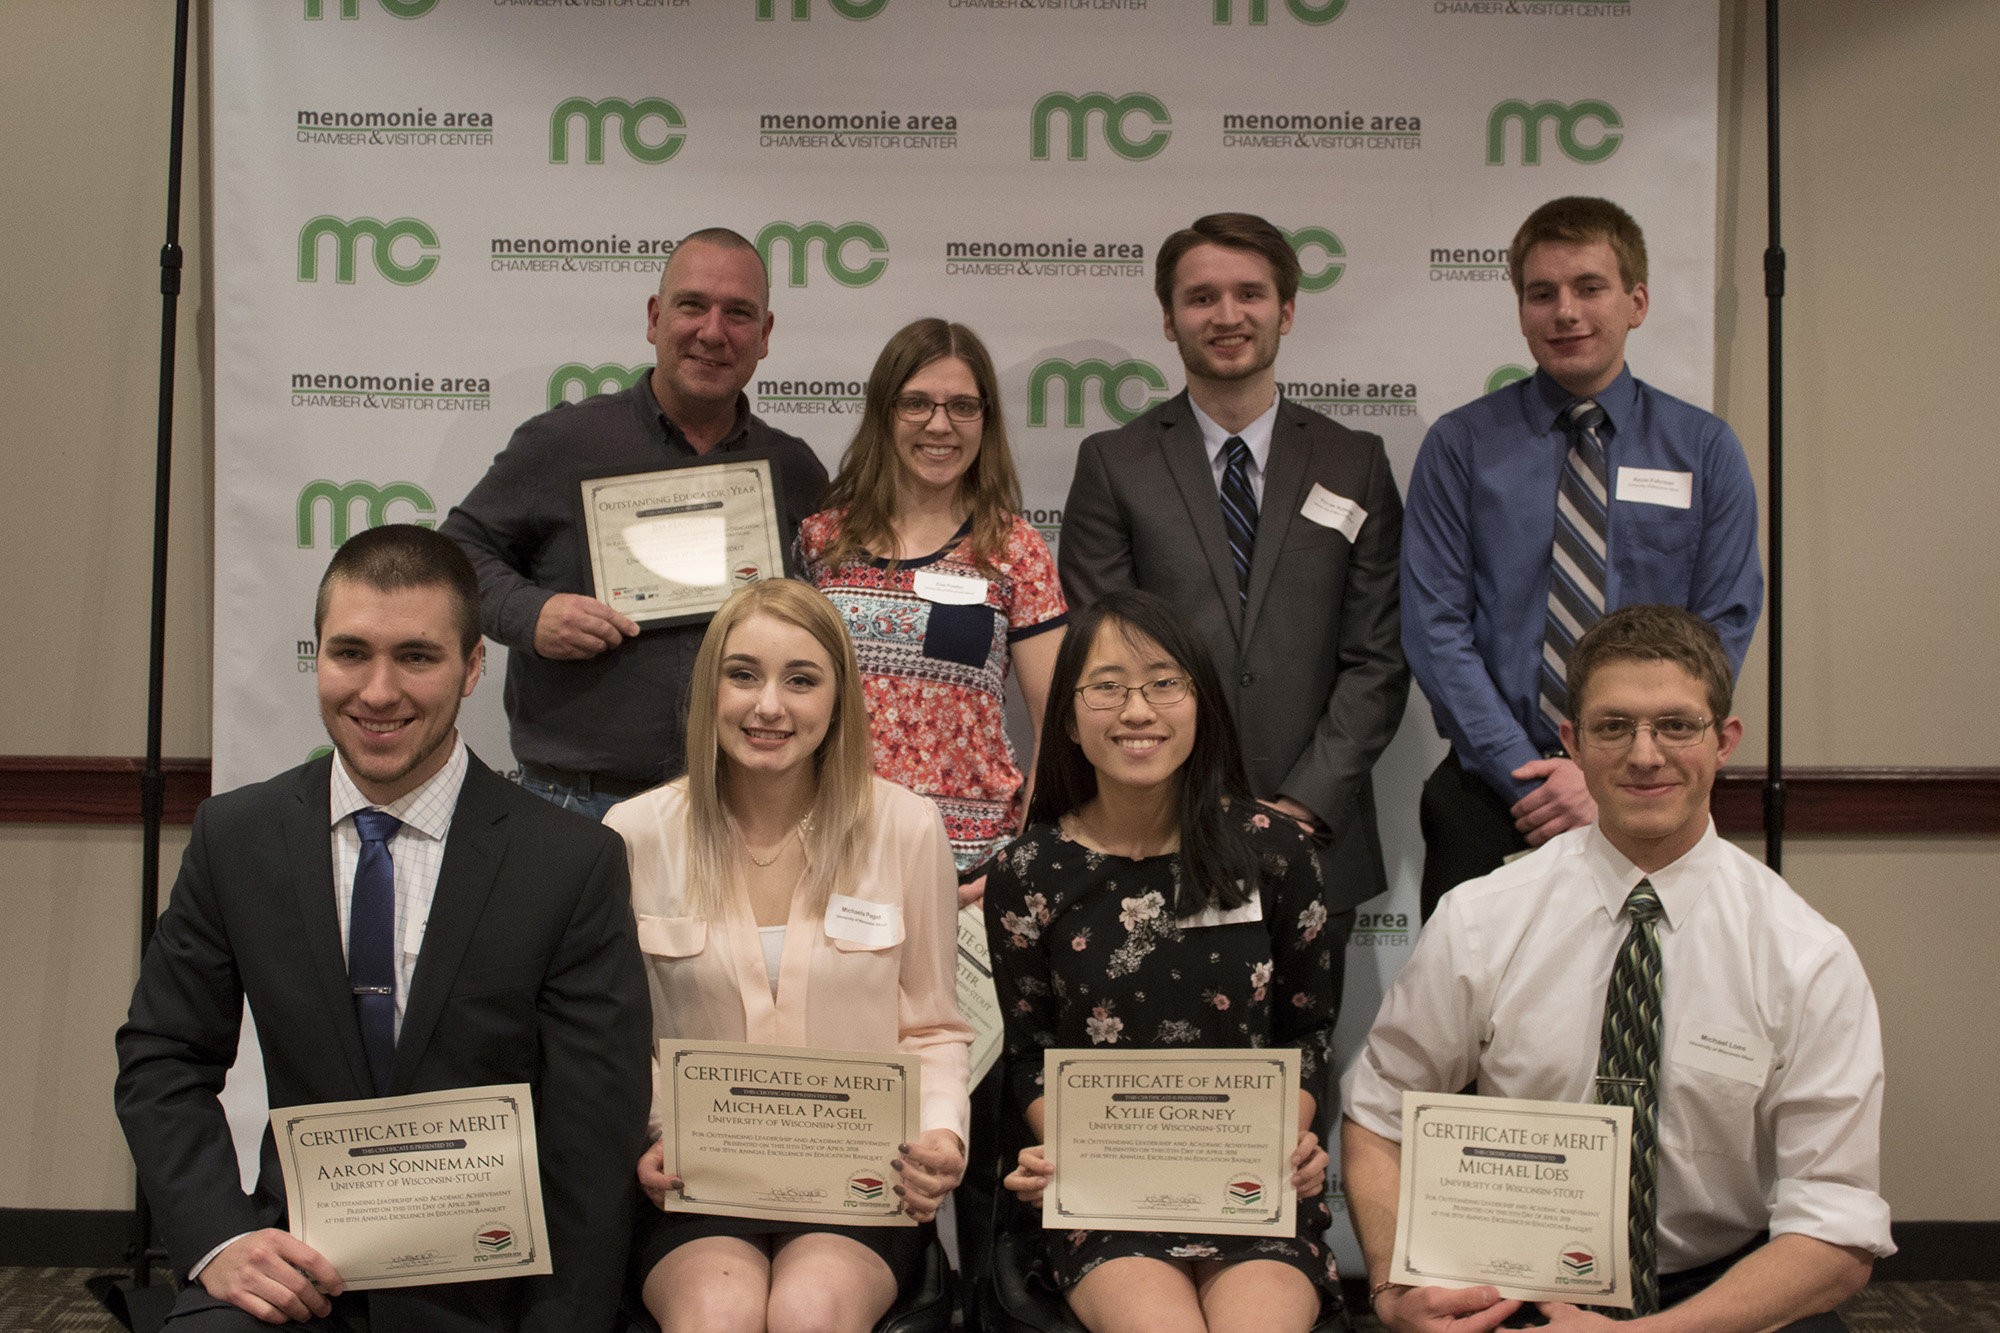 UW-Stout honorees at the Menomonie Greater Menomonie Area Chamber of Commerce Excellence in Education banquet.